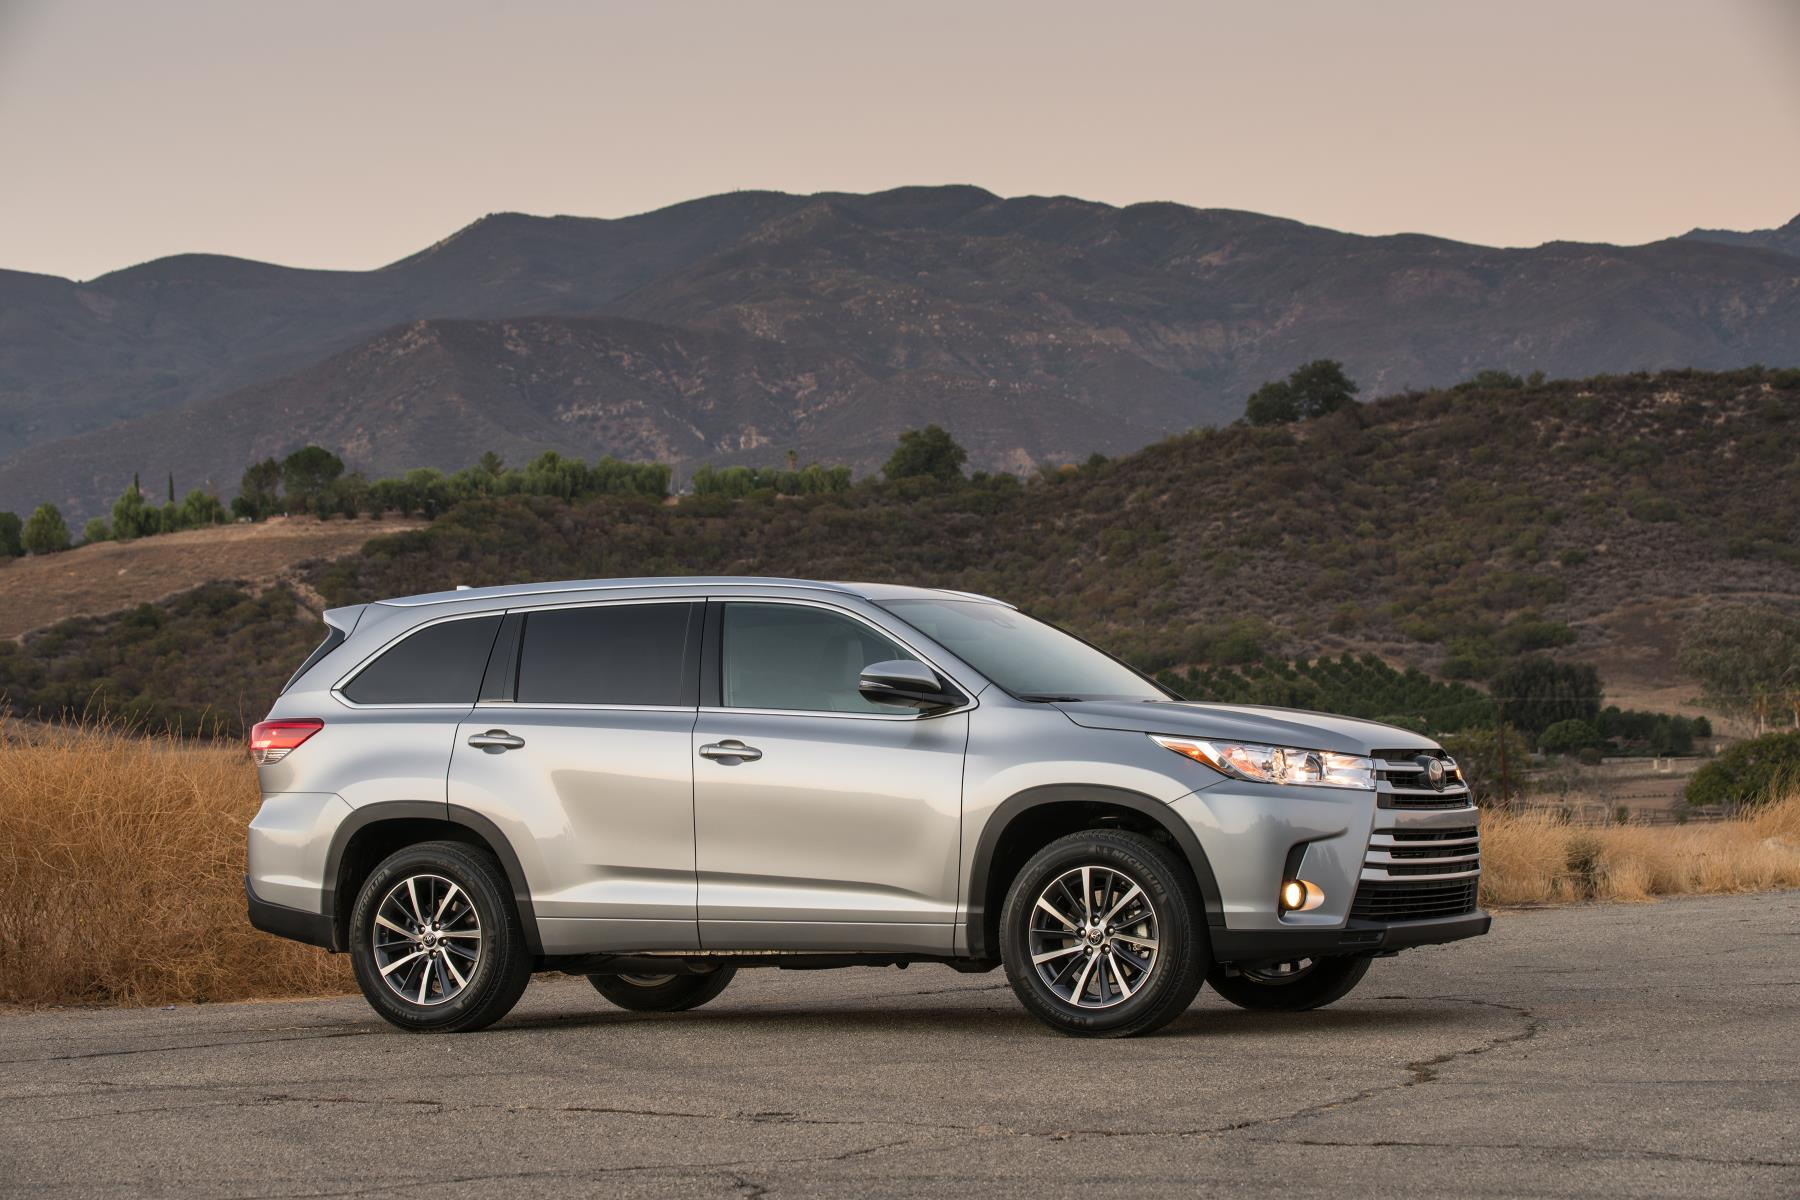 Toyota Highlander, one of Toyota's's top selling vehicles in the USA in 2017